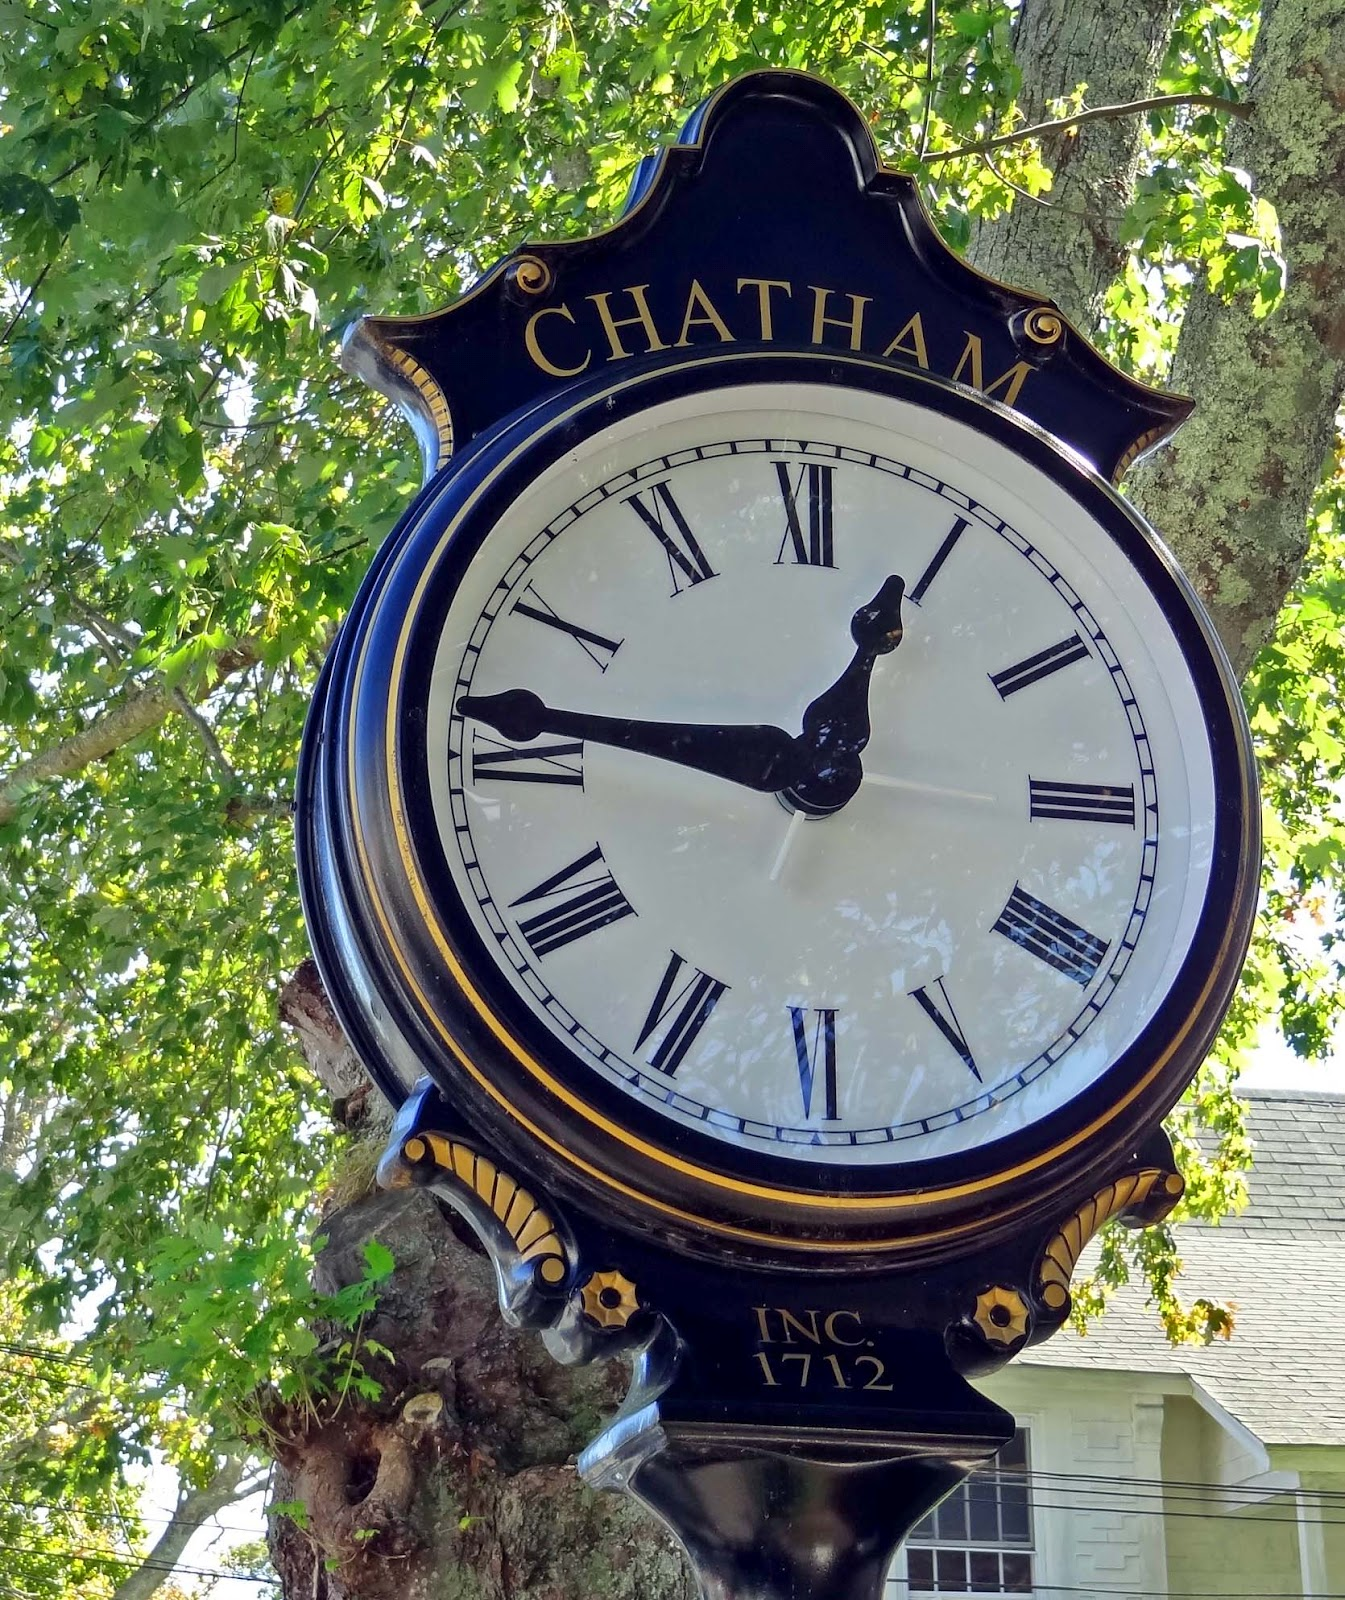 Joe's Retirement Blog: Downtown, Chatham, Cape Cod